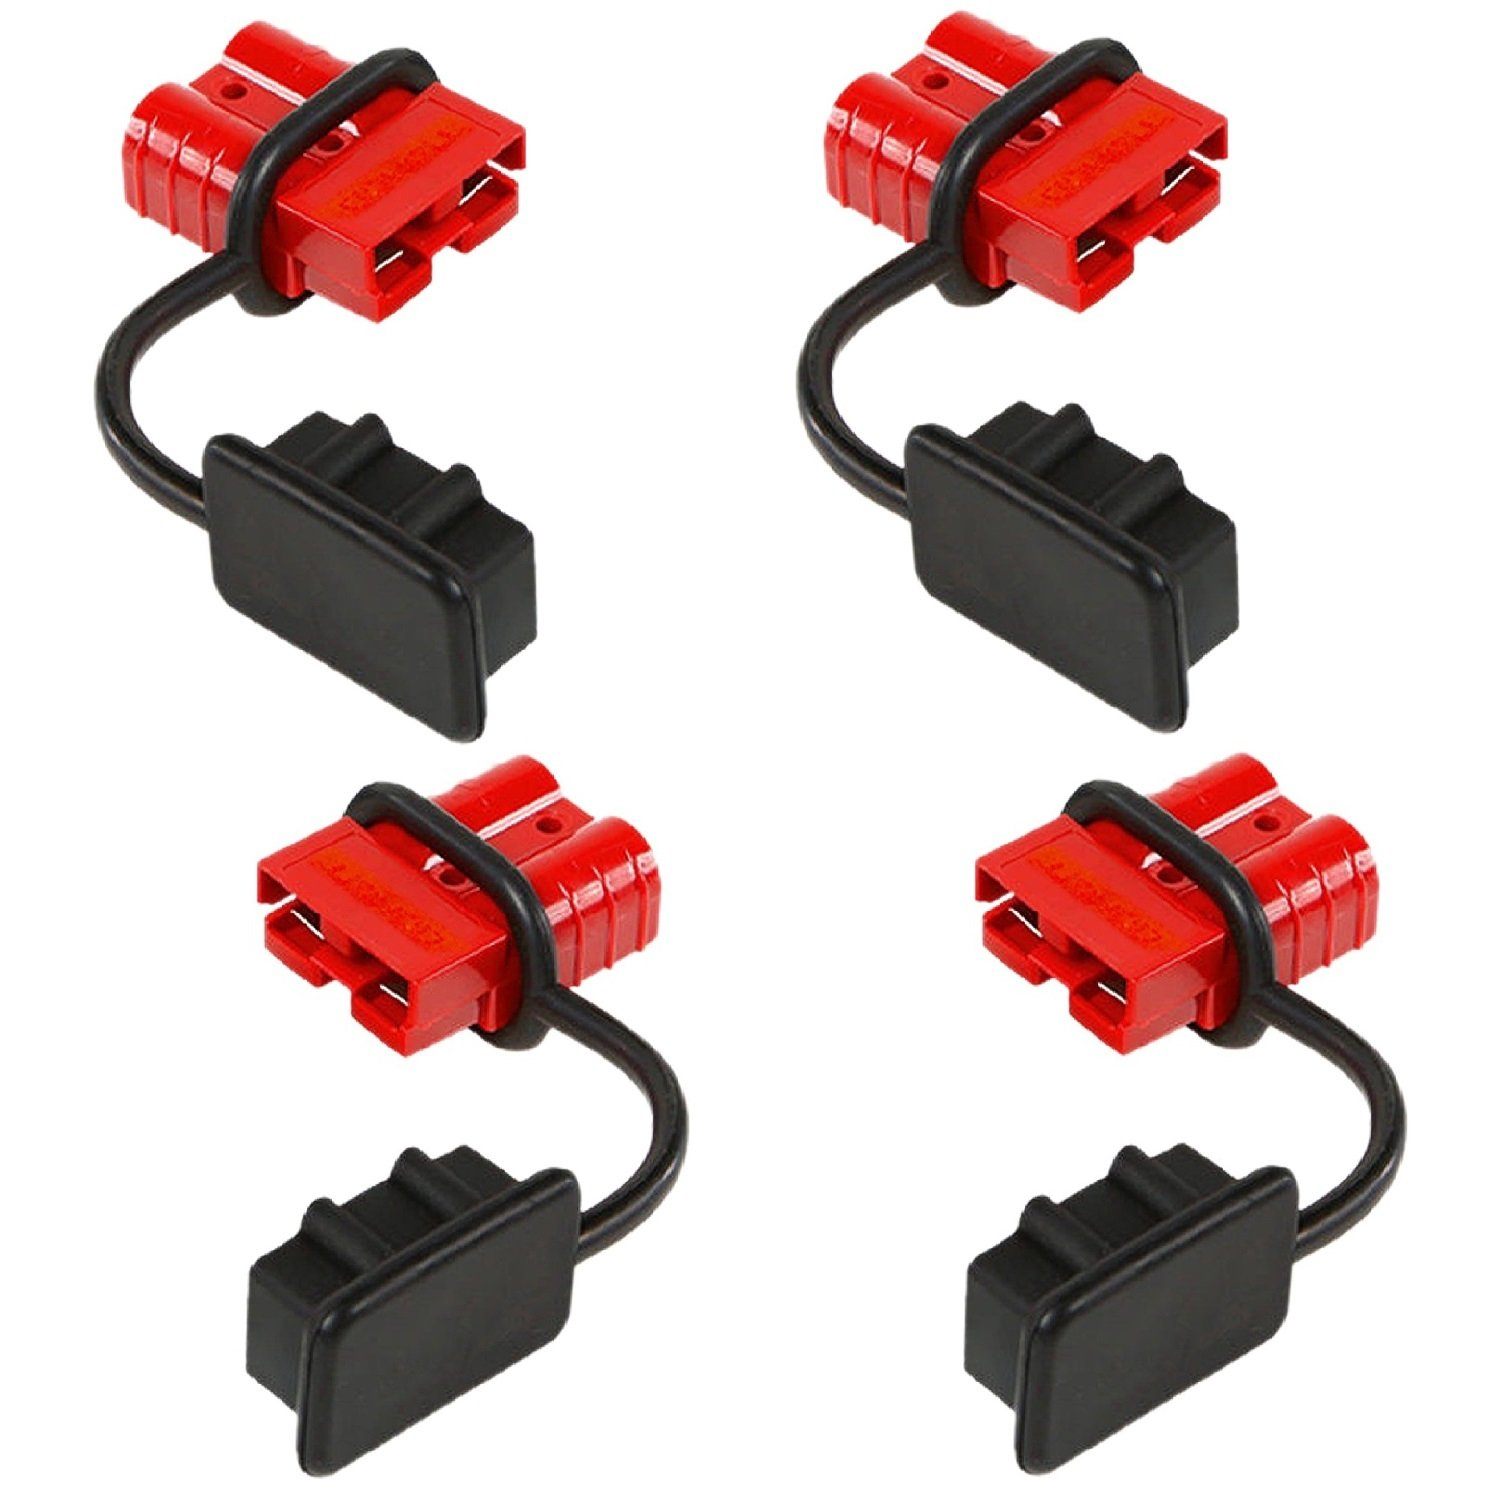 Excellent Orionmotortech 4 Pcs 6 8 Gauge Battery Quick Connect Disconnect Wire Harness Plug Kit For Recovery Winch Or Trailer 12 36V Dc 50A 4 Pcs Wiring Cloud Overrenstrafr09Org